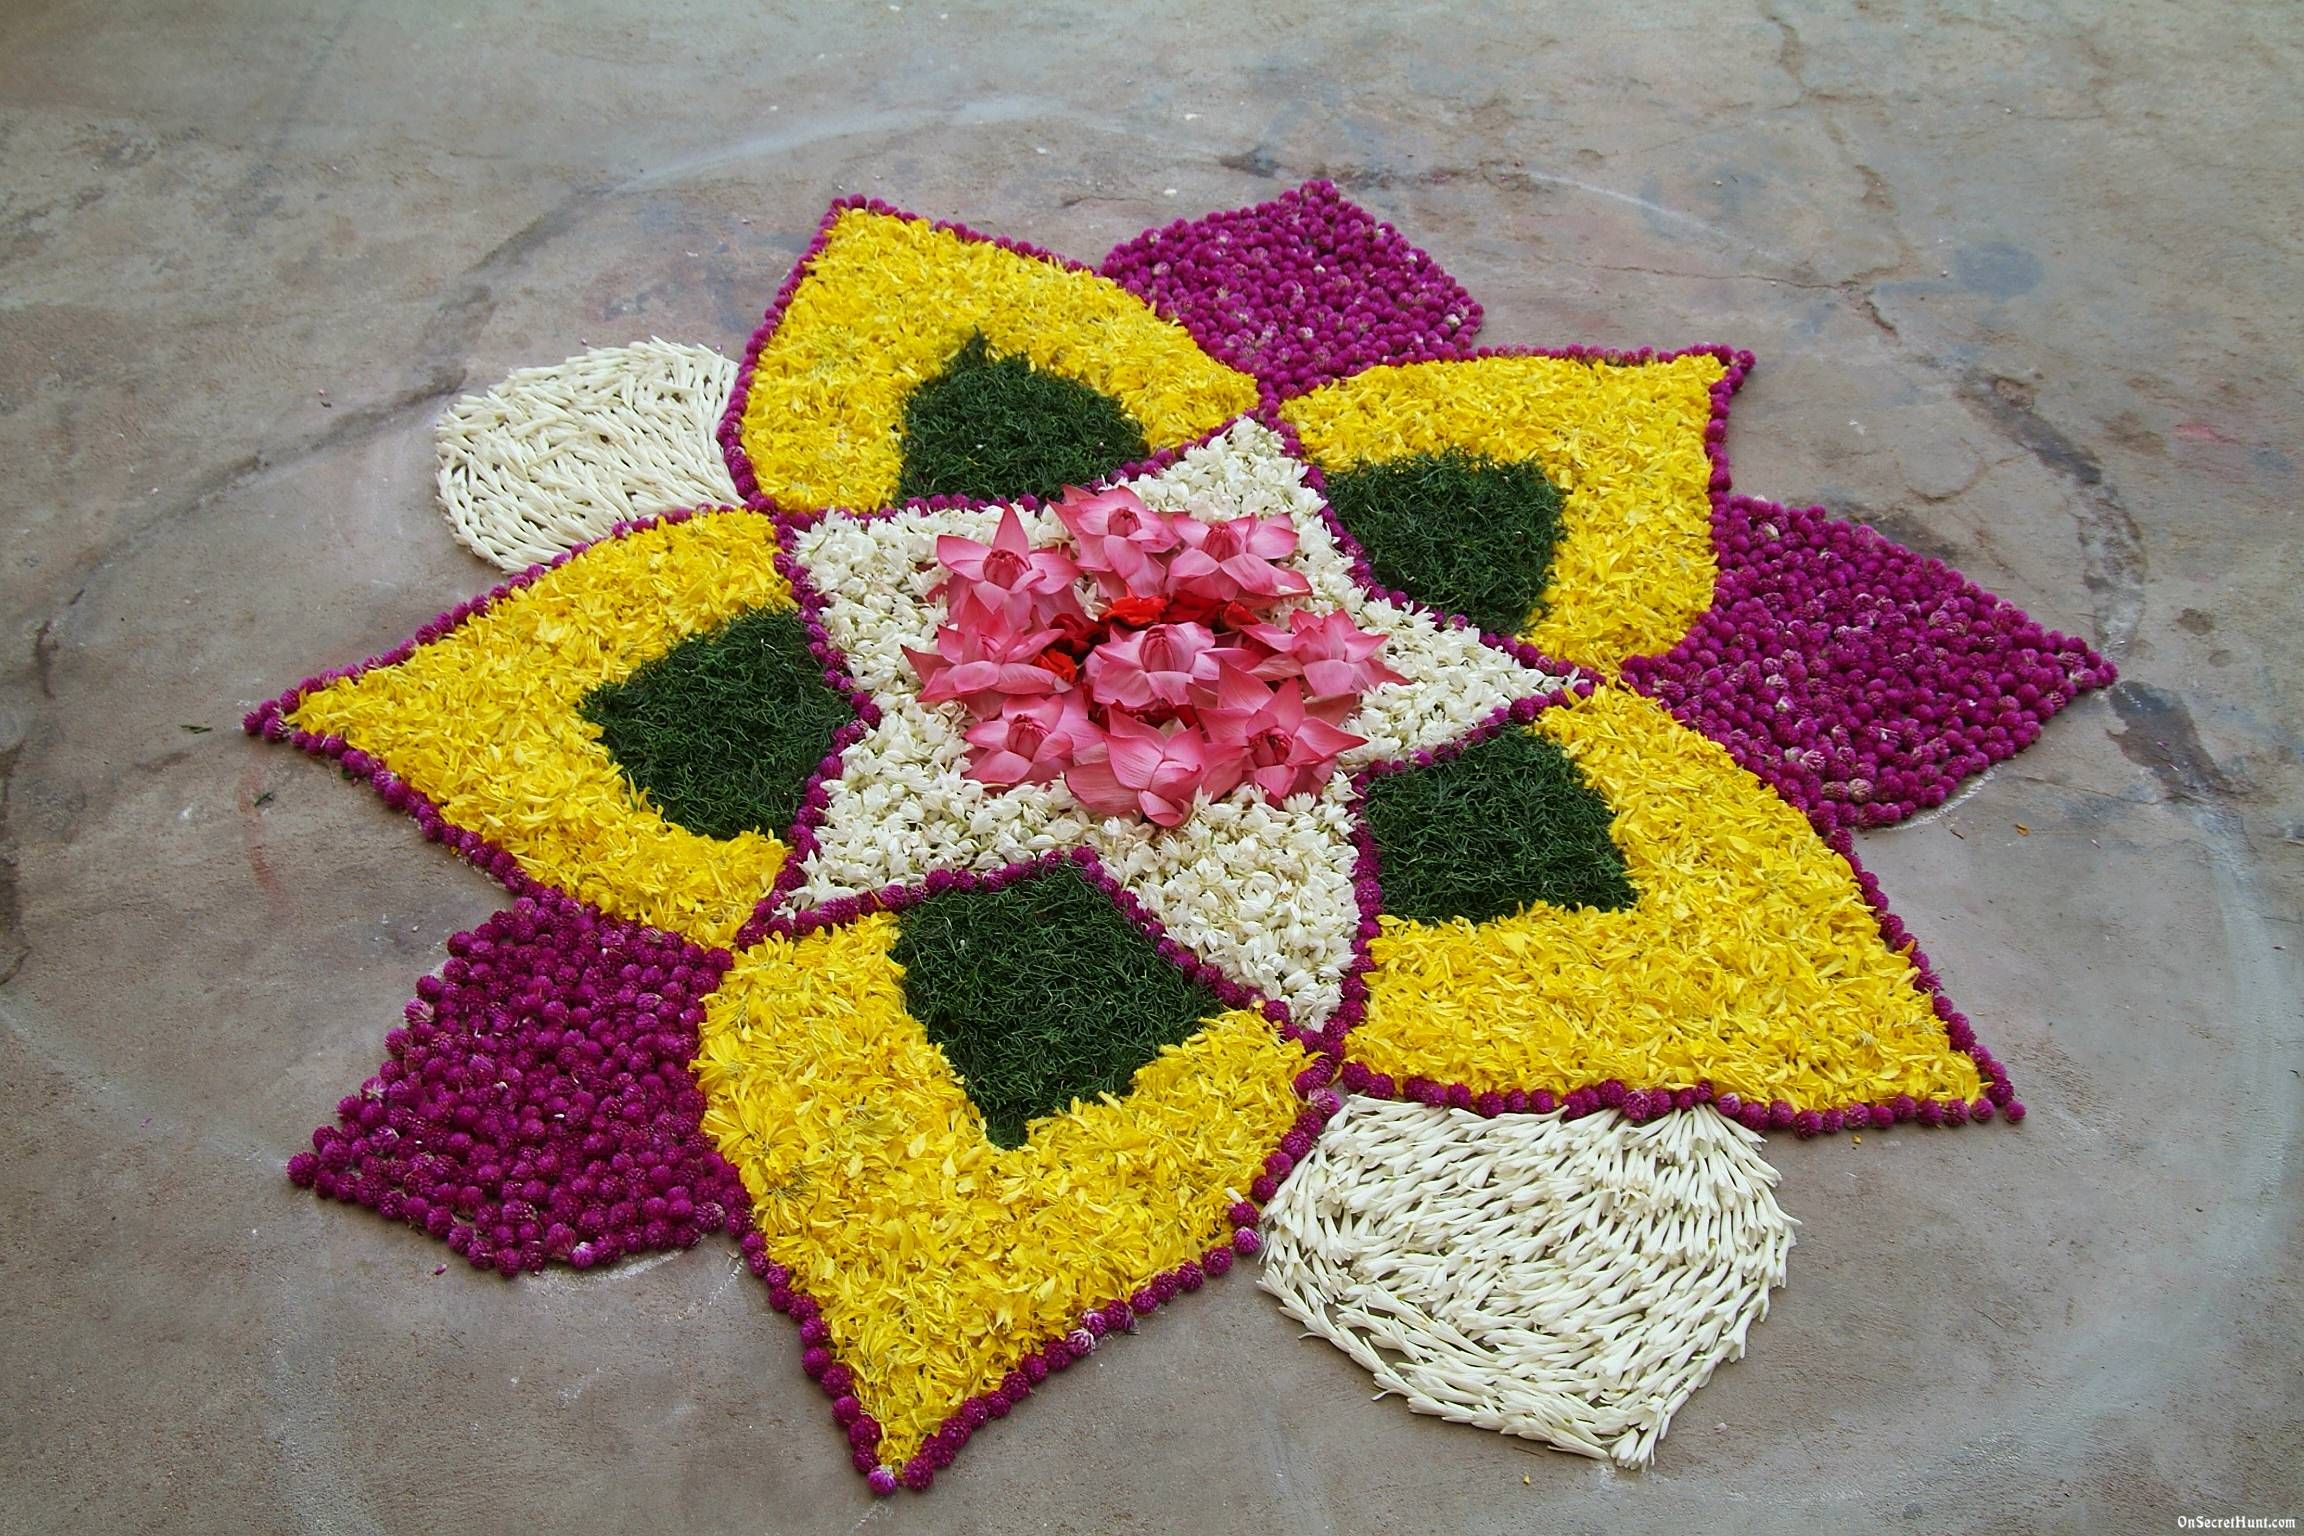 Pin by Alka Parbat on Rangoli designs | Pinterest | Rangoli designs ... for Simple Rangoli Designs For Diwali With Flowers  568zmd